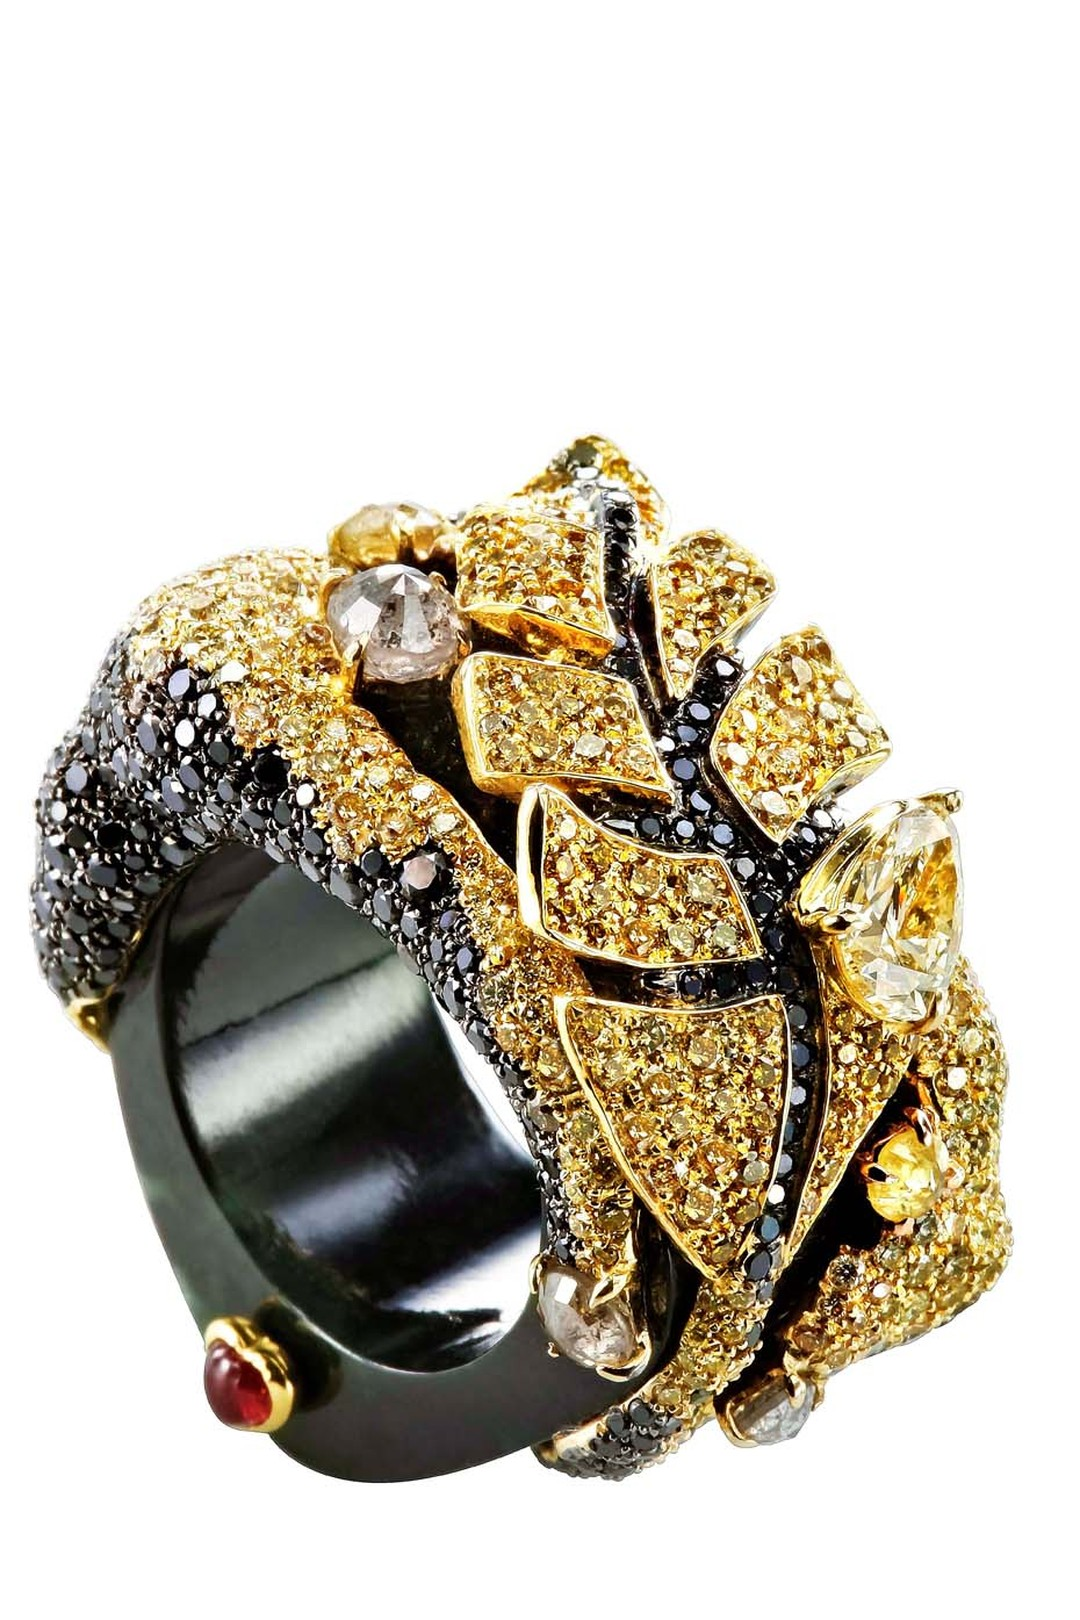 Chara Wen Life collection ring with yellow and black diamonds on a jade black band.